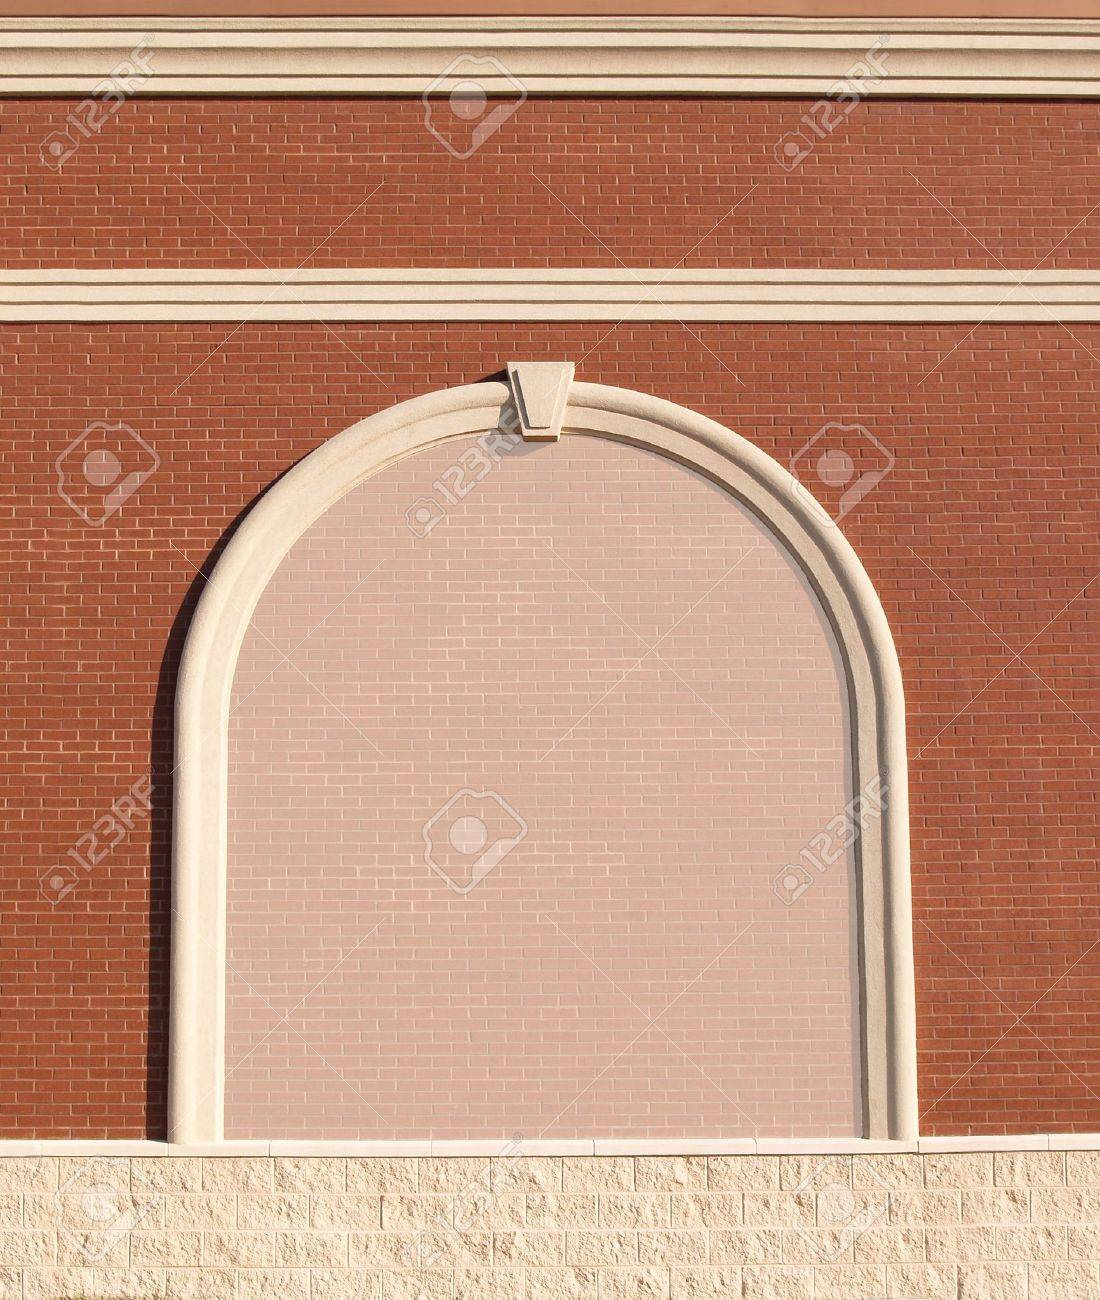 Ornate Roman styled brick wall with curved molding and a reduced opacity brick copy space. - 5228817